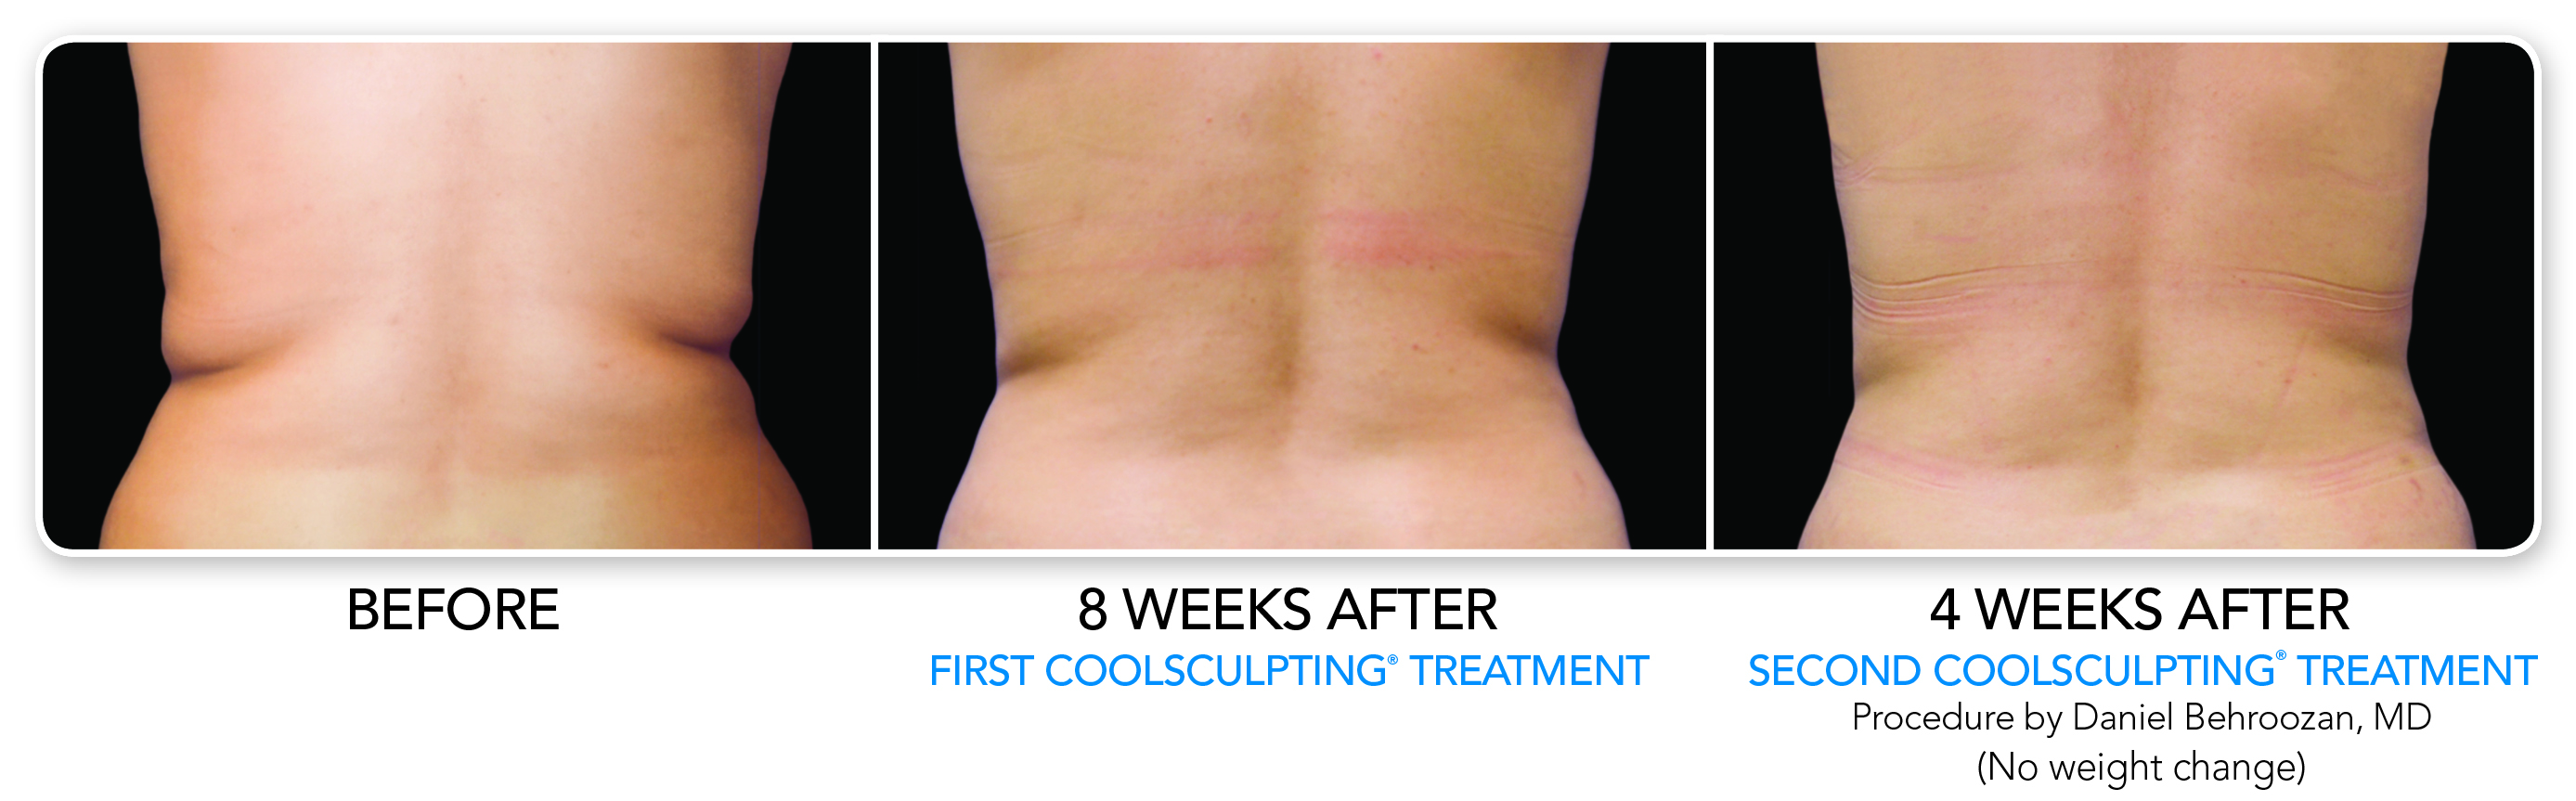 CoolSculpt Treatment